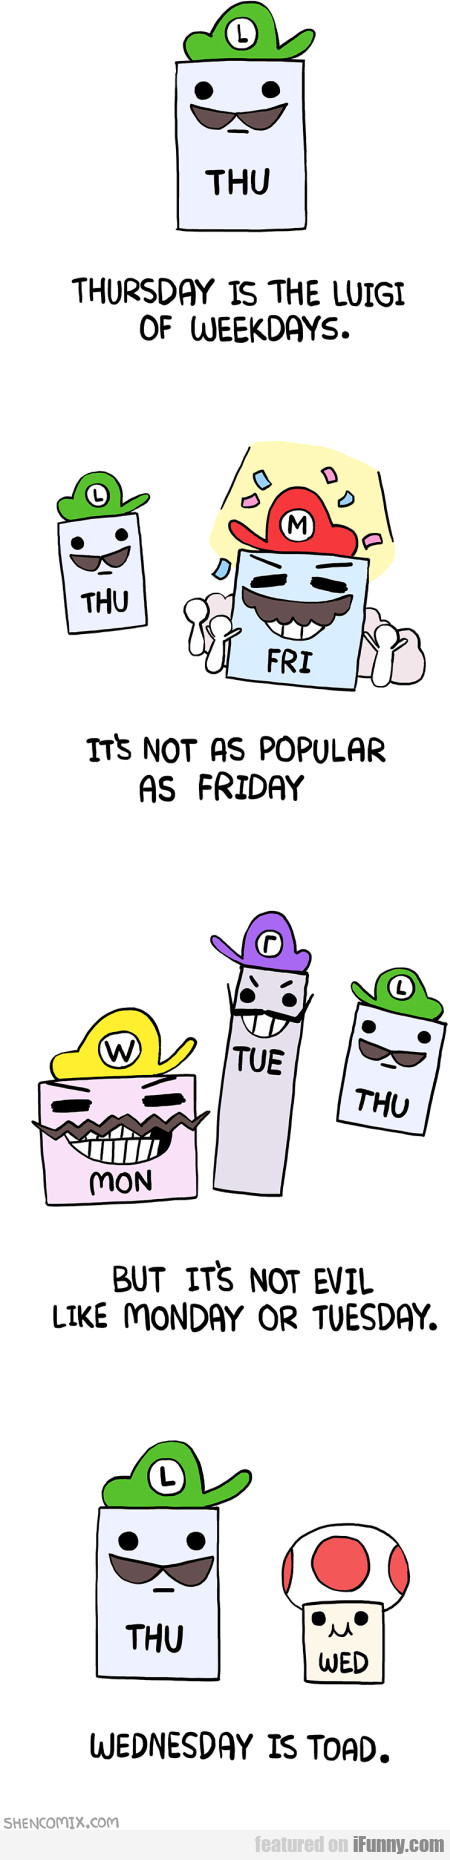 Thursday Is The Luigi Of Weekdays